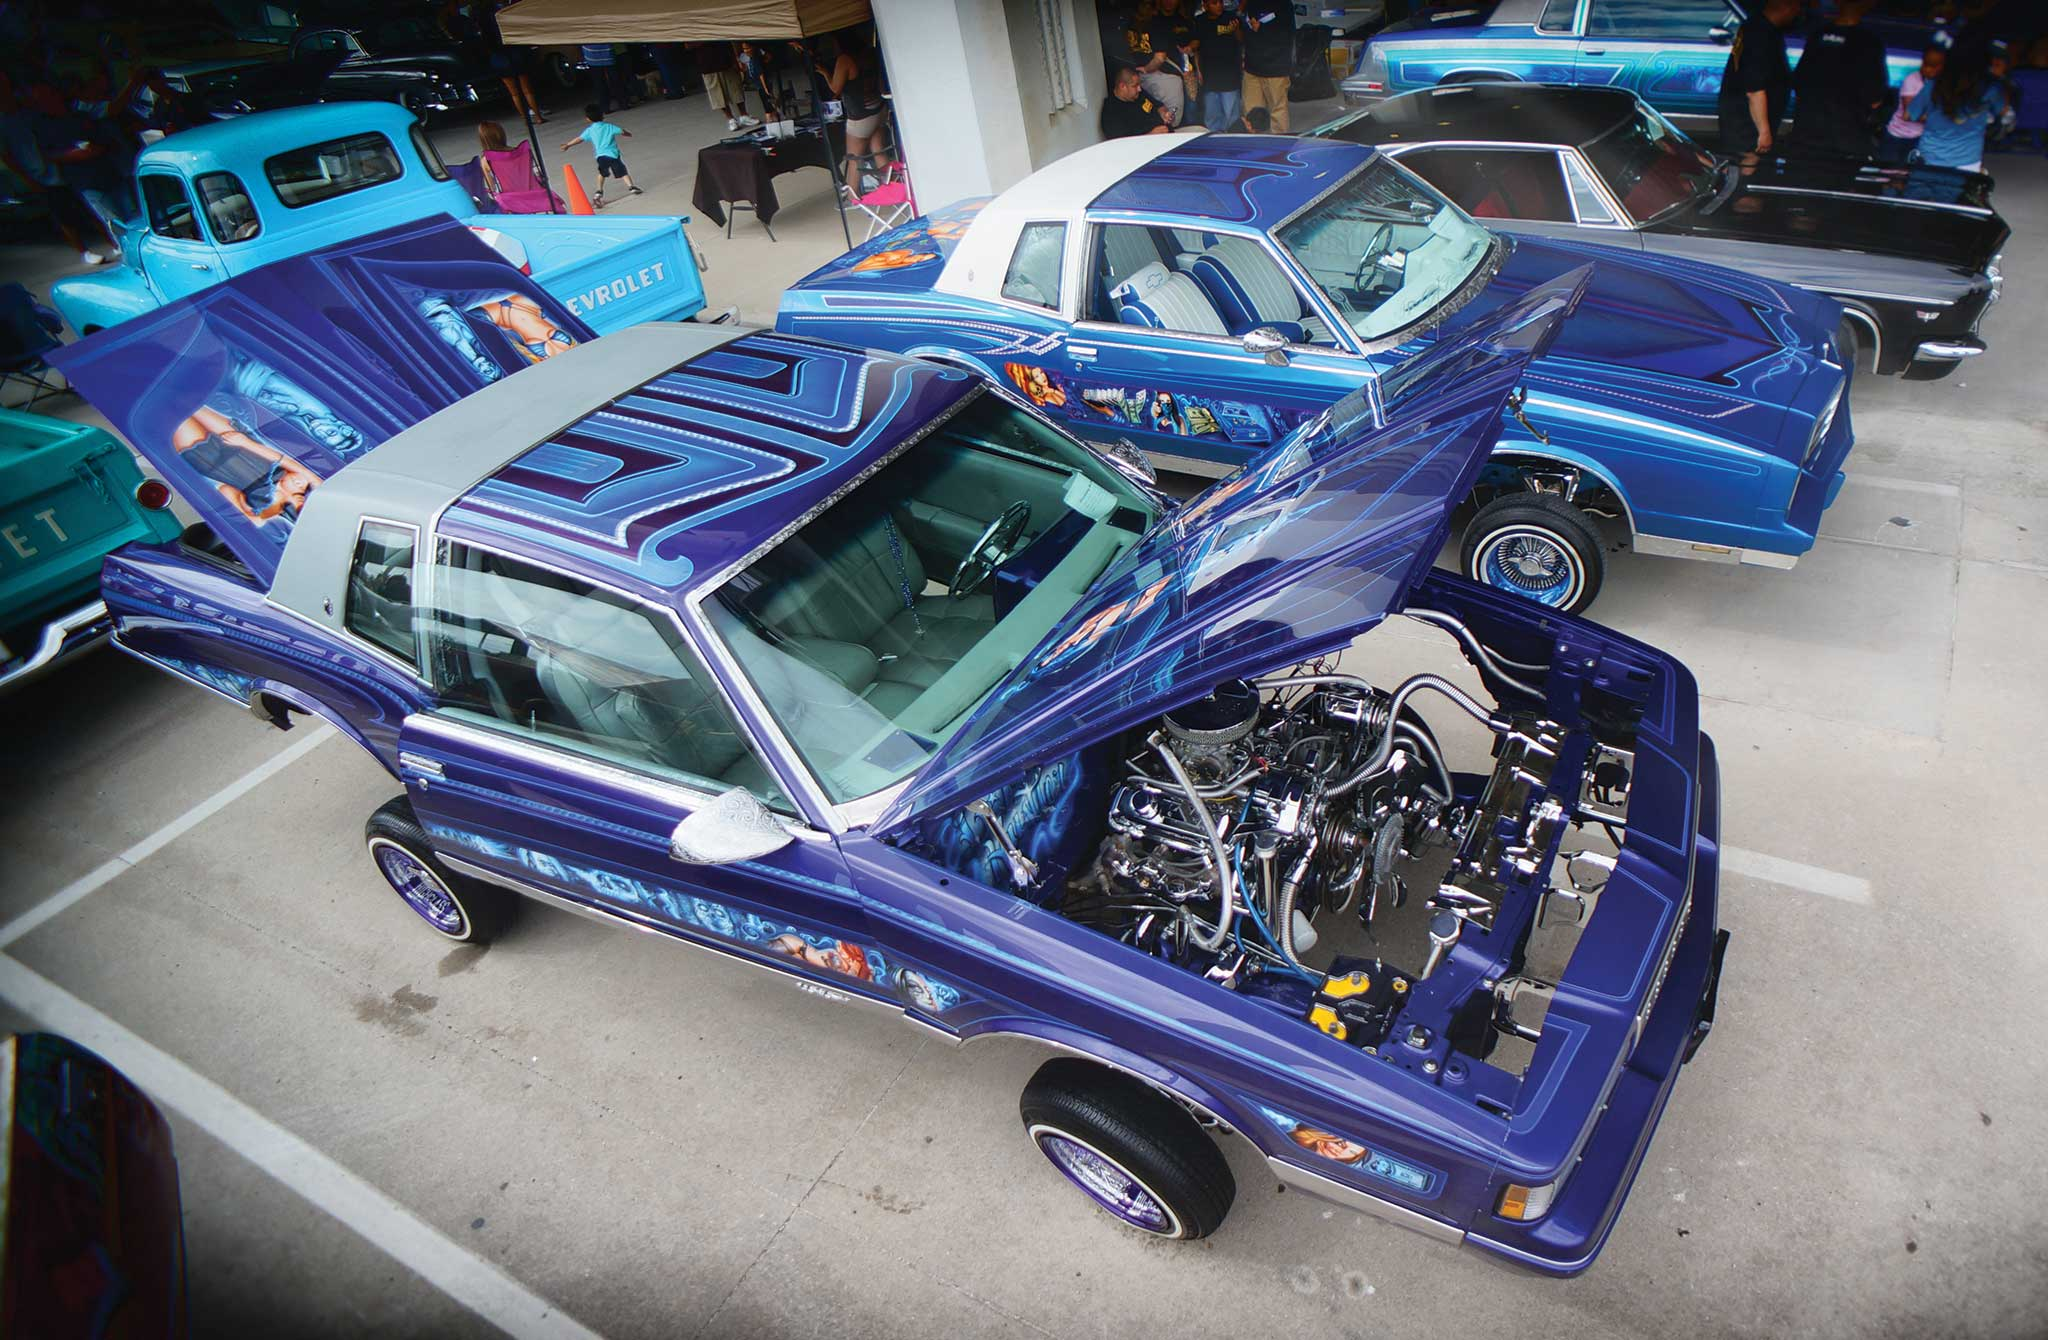 004 2015 dreaming the cure car show g bodies - Lowrider